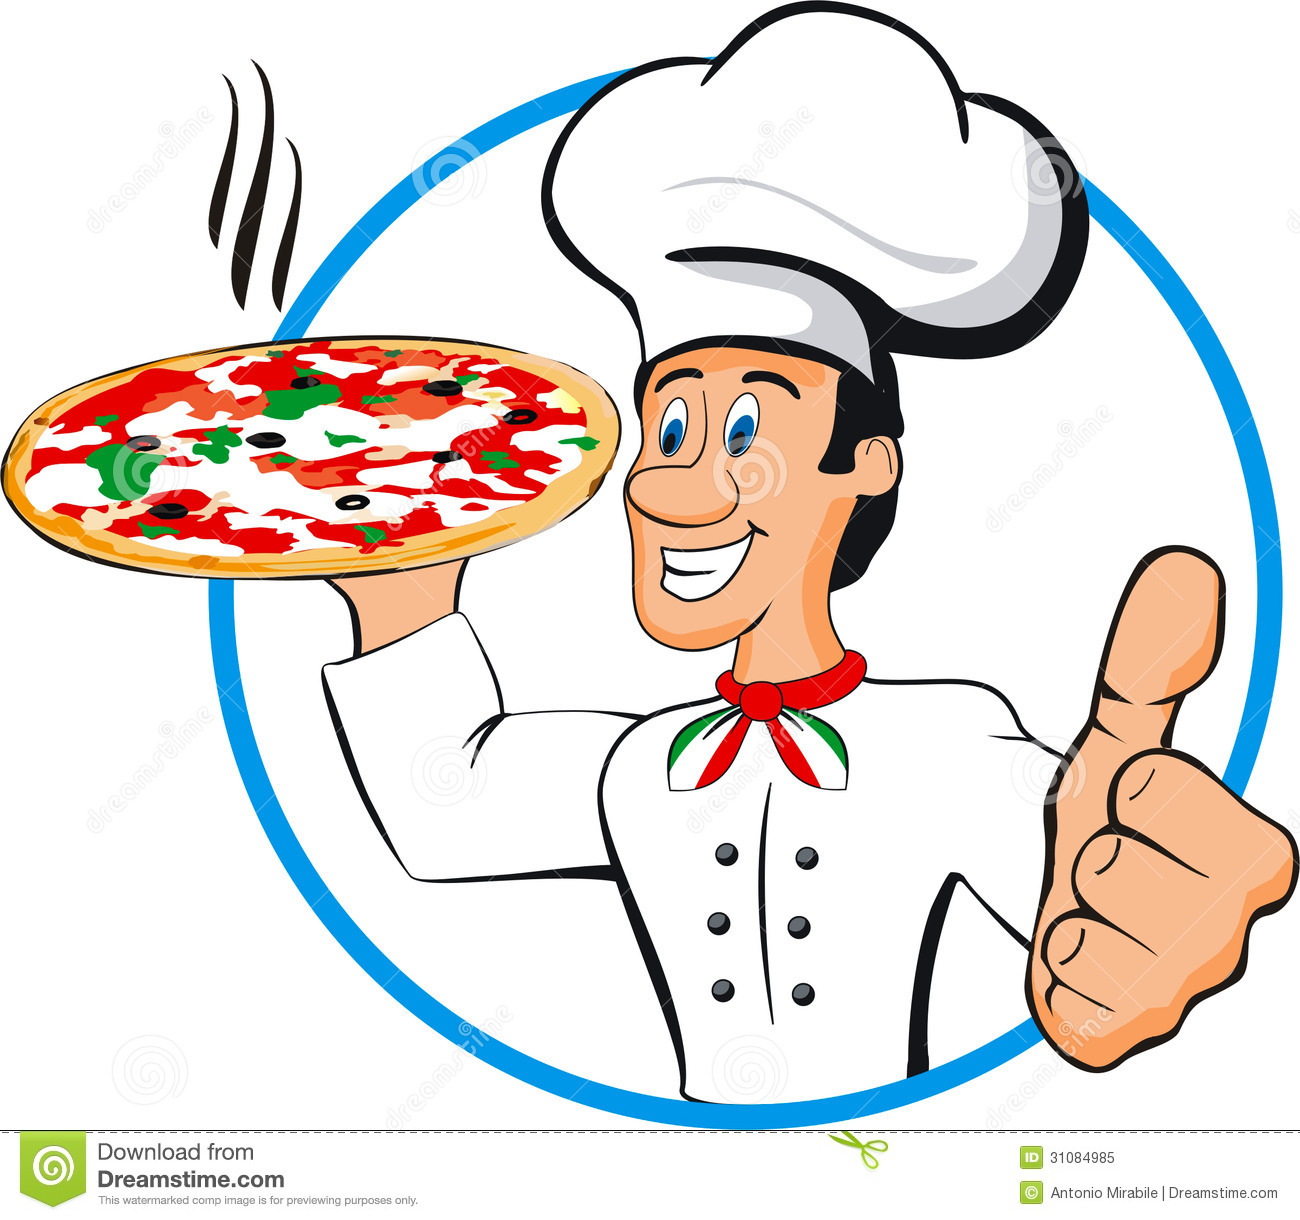 Chef Pizza Royalty Free Stock Photo - Image: 31084985